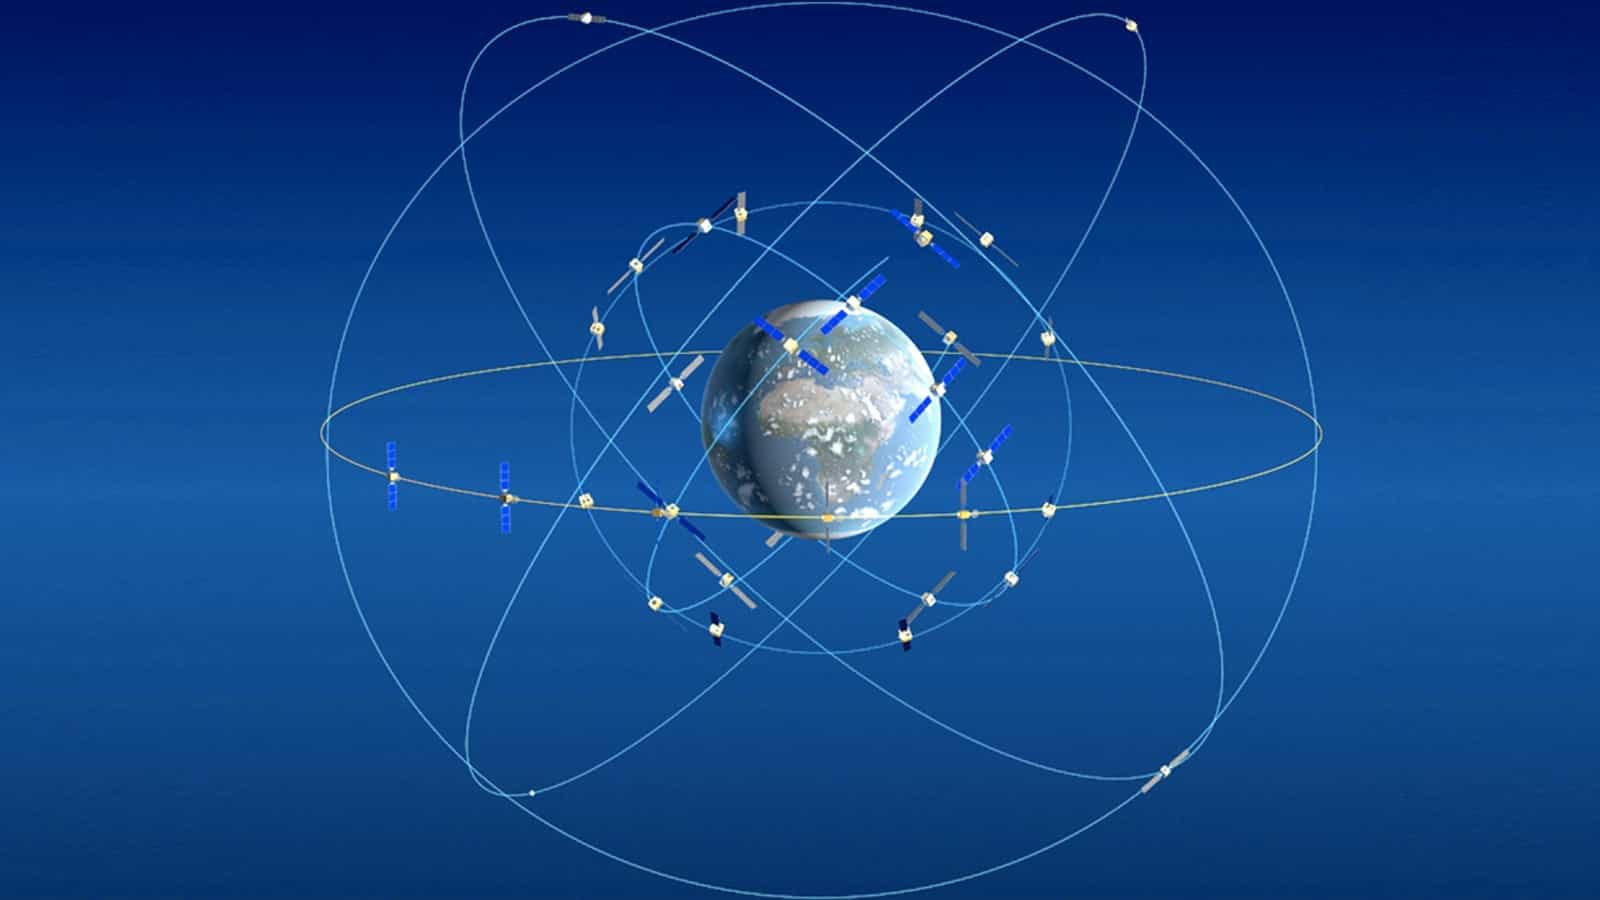 BeiDou vs. GPS vs. Glonass vs. Galileo